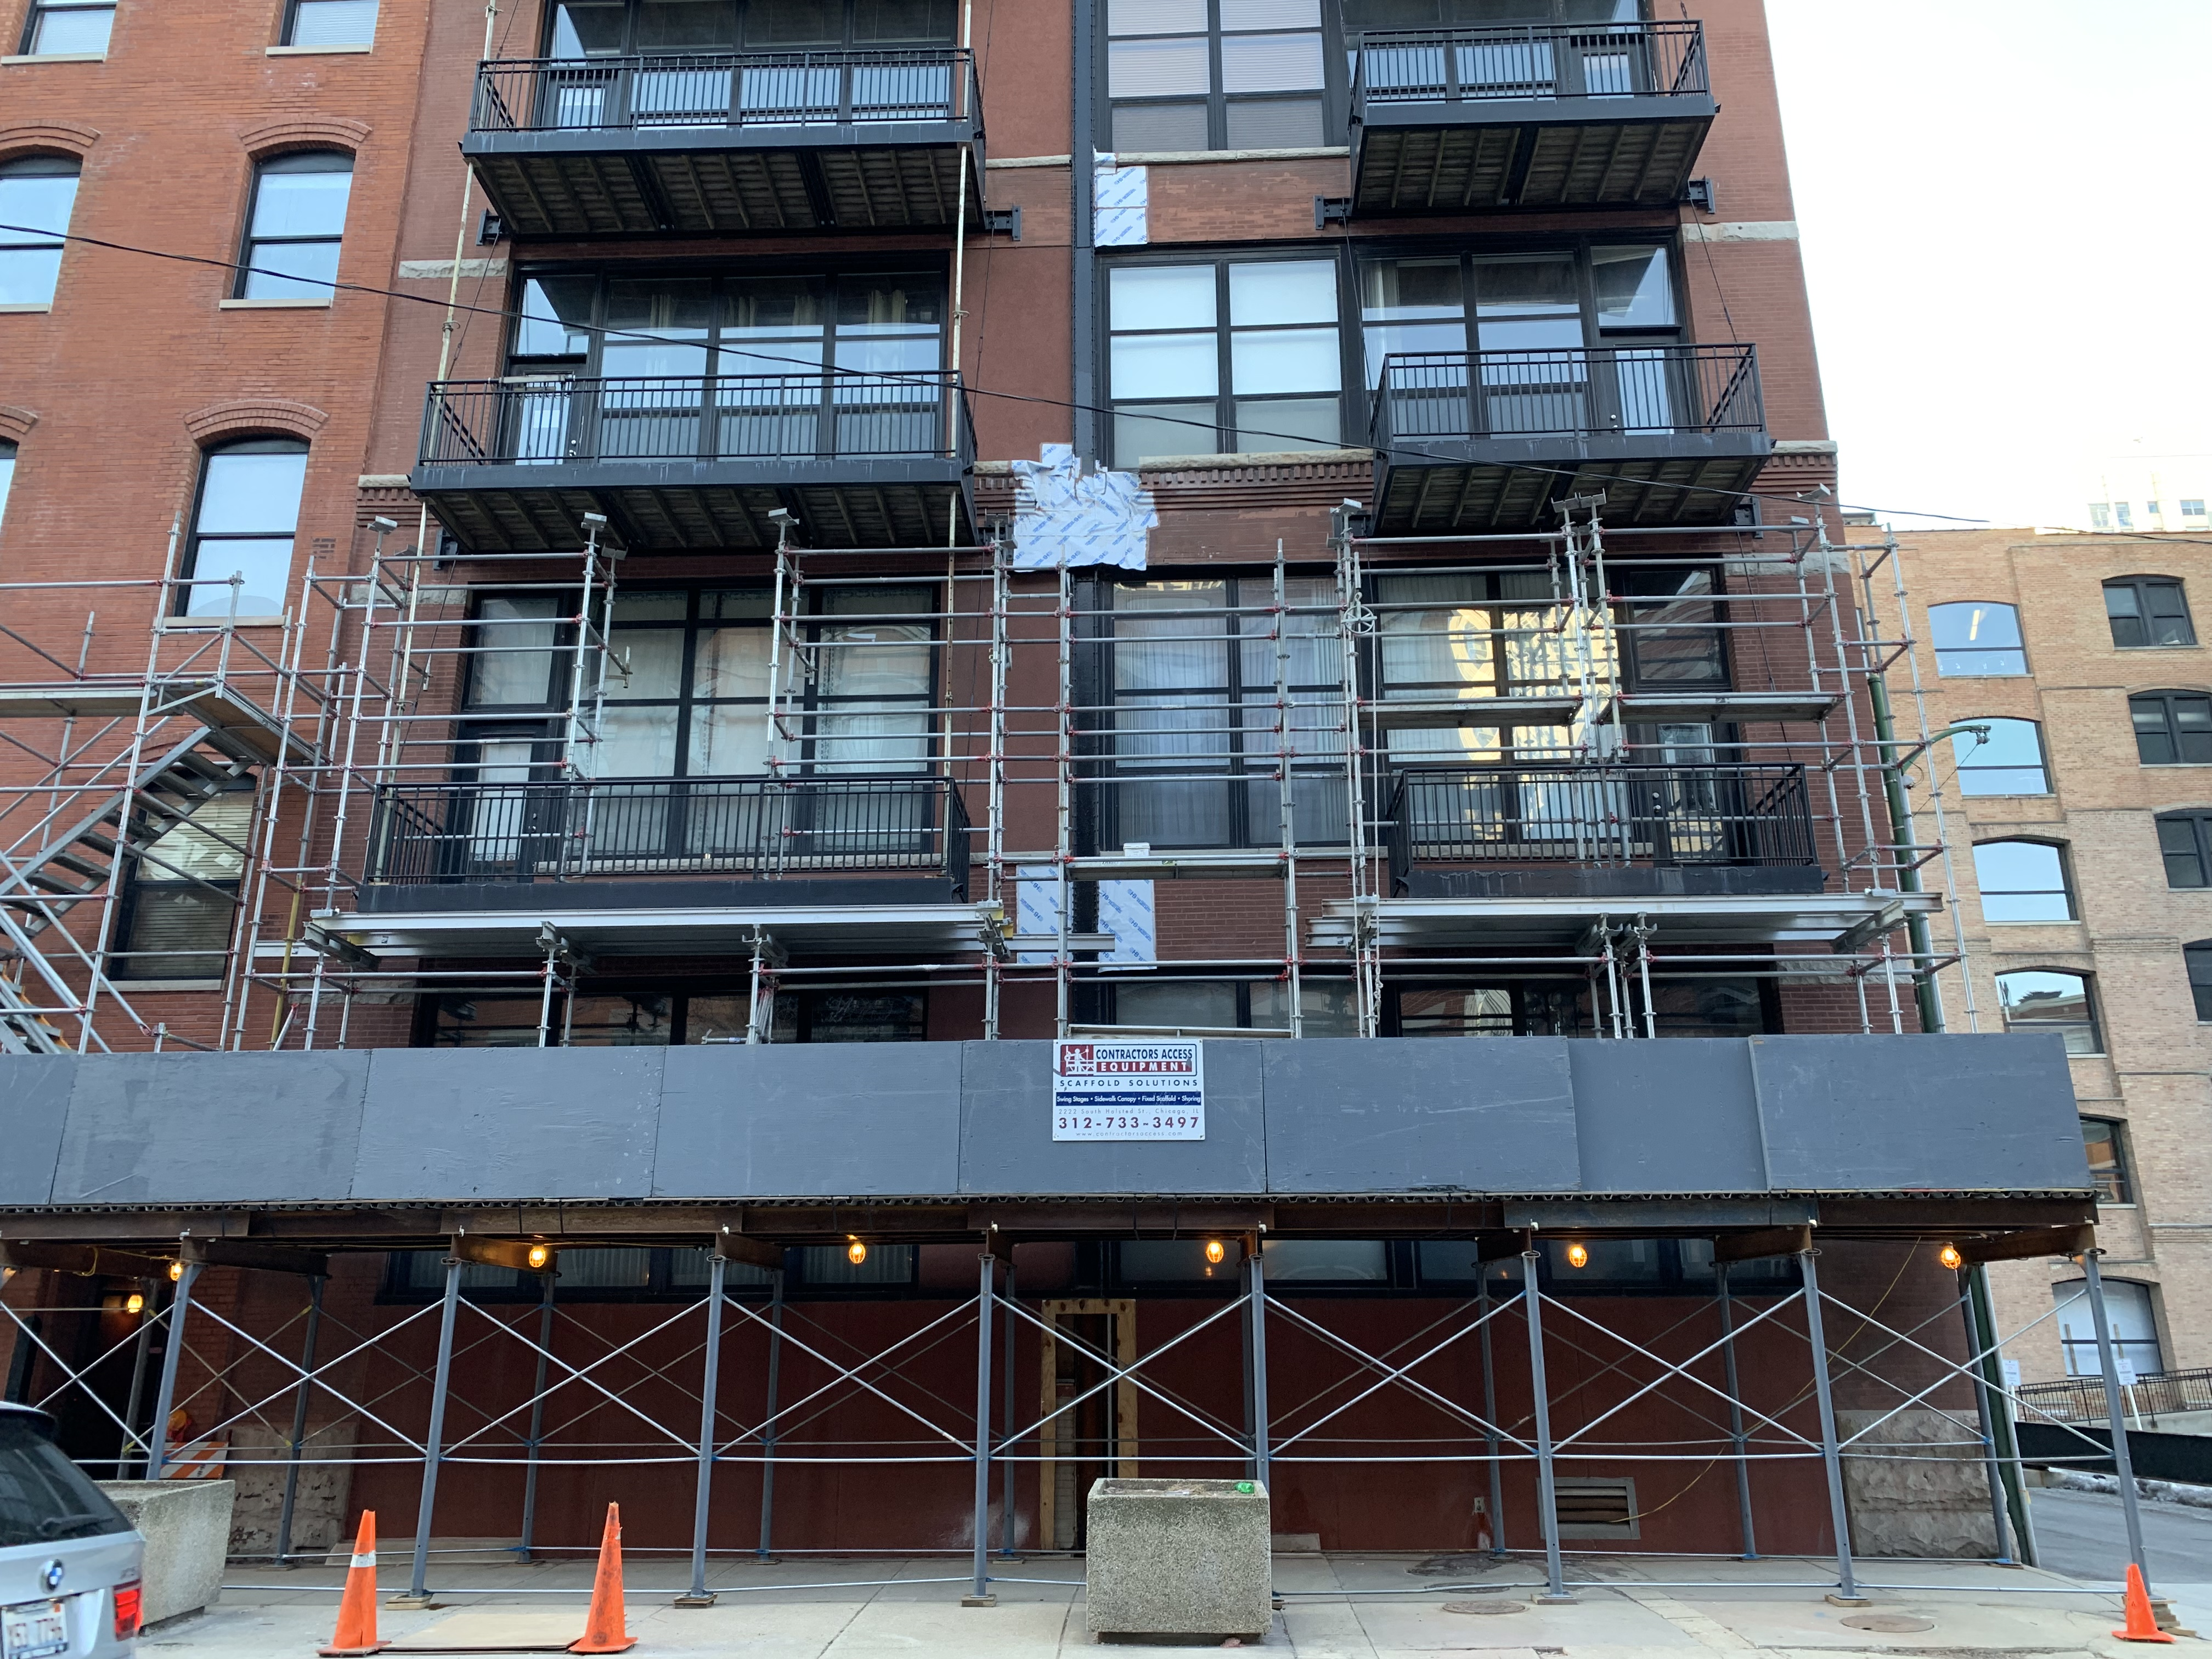 541 W. Fulton - Shoring & Tower scaffold 2